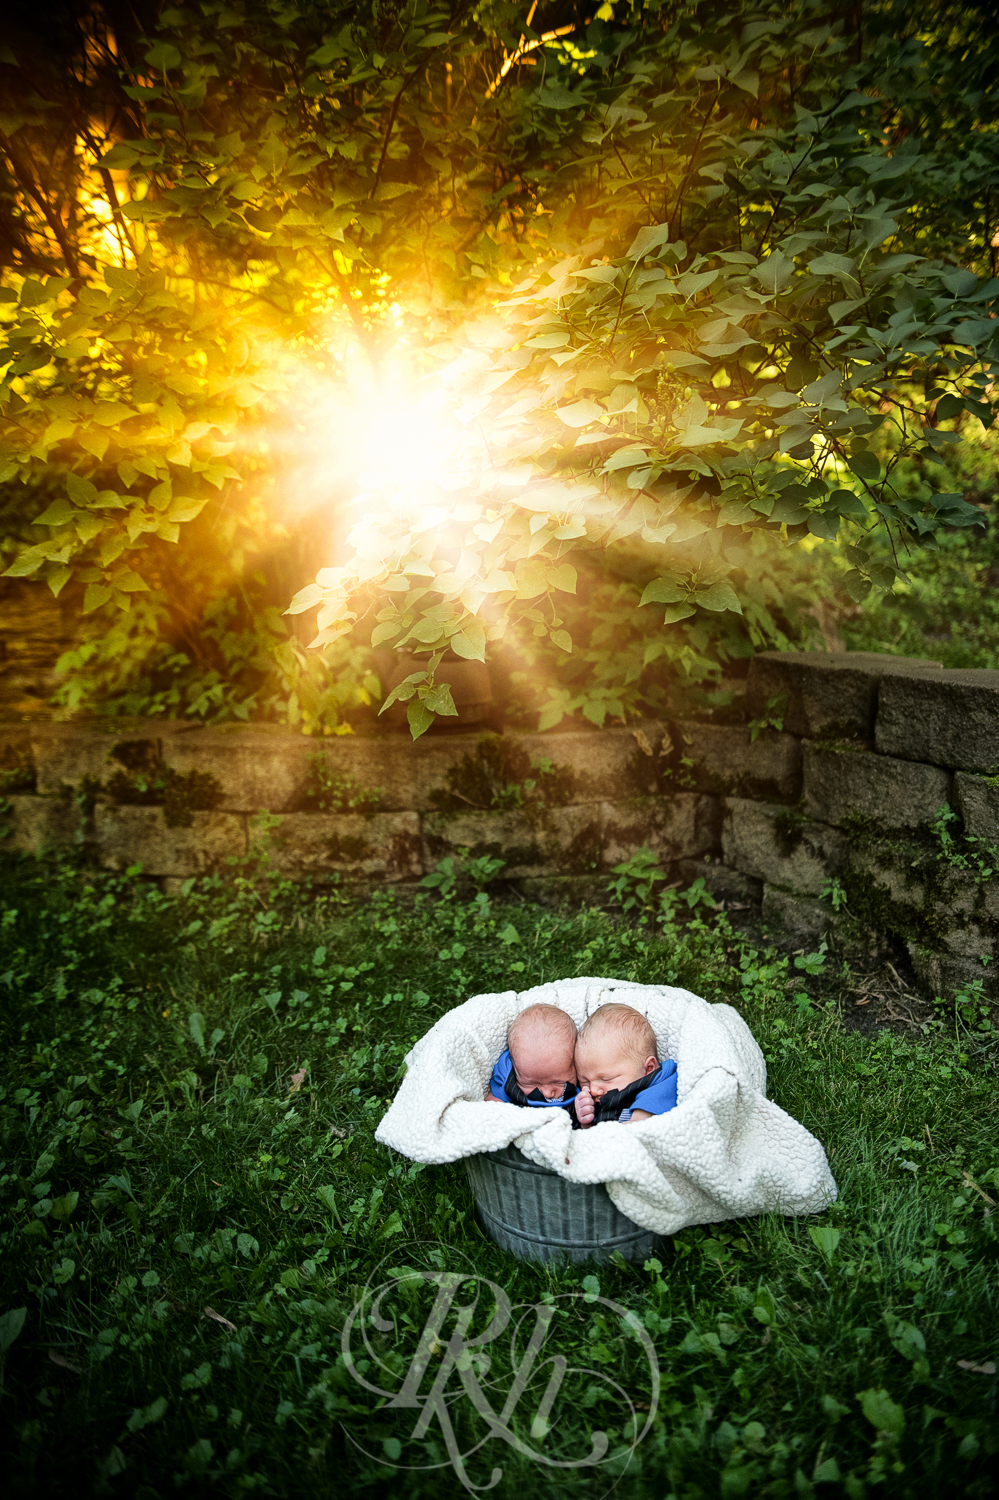 William & Theodore - Minnesota Newborn Photographer - RKH Images -6.jpg